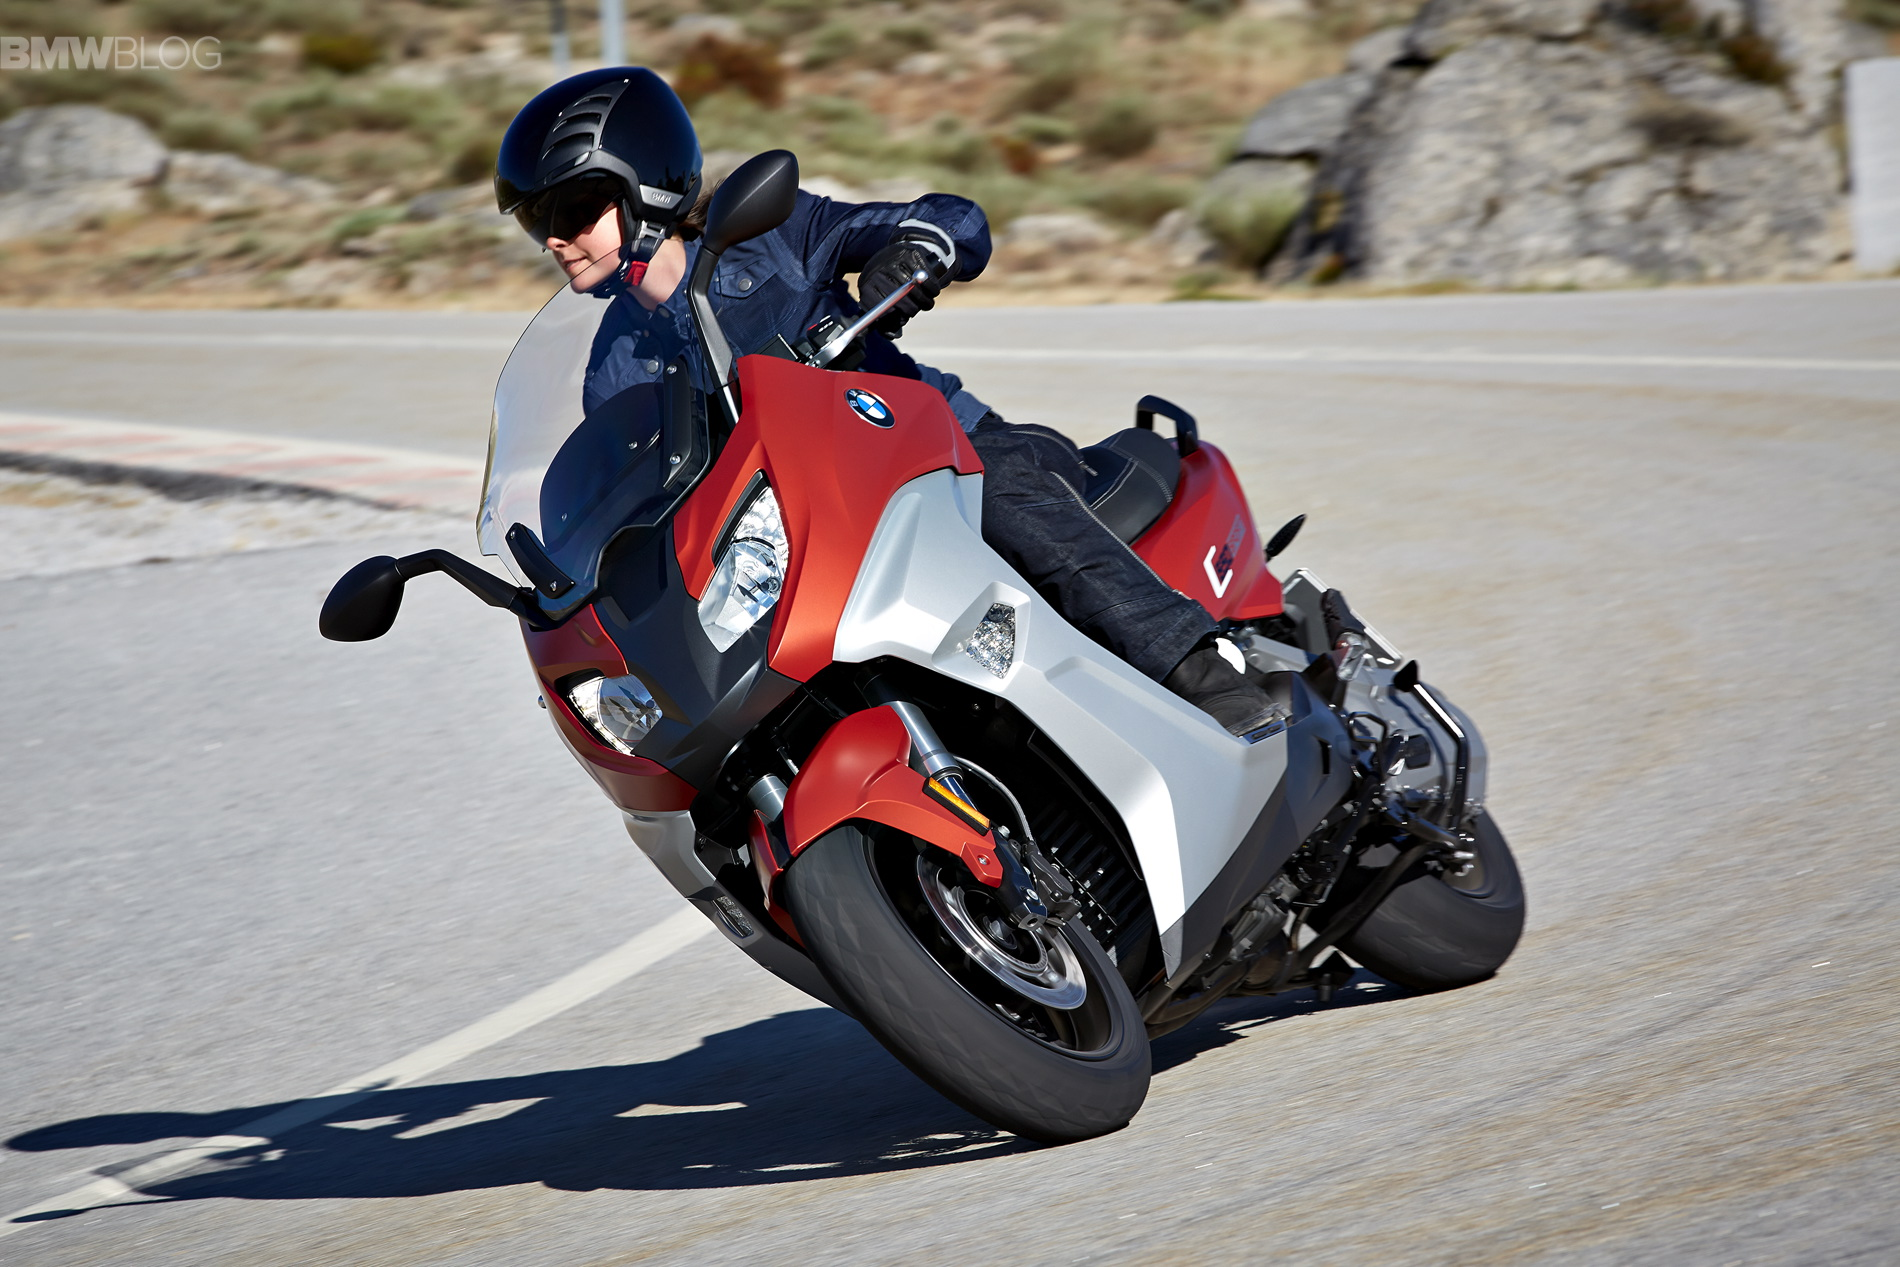 New BMW C 650 Sport and BMW C 650 GT images 1900x 1200 07